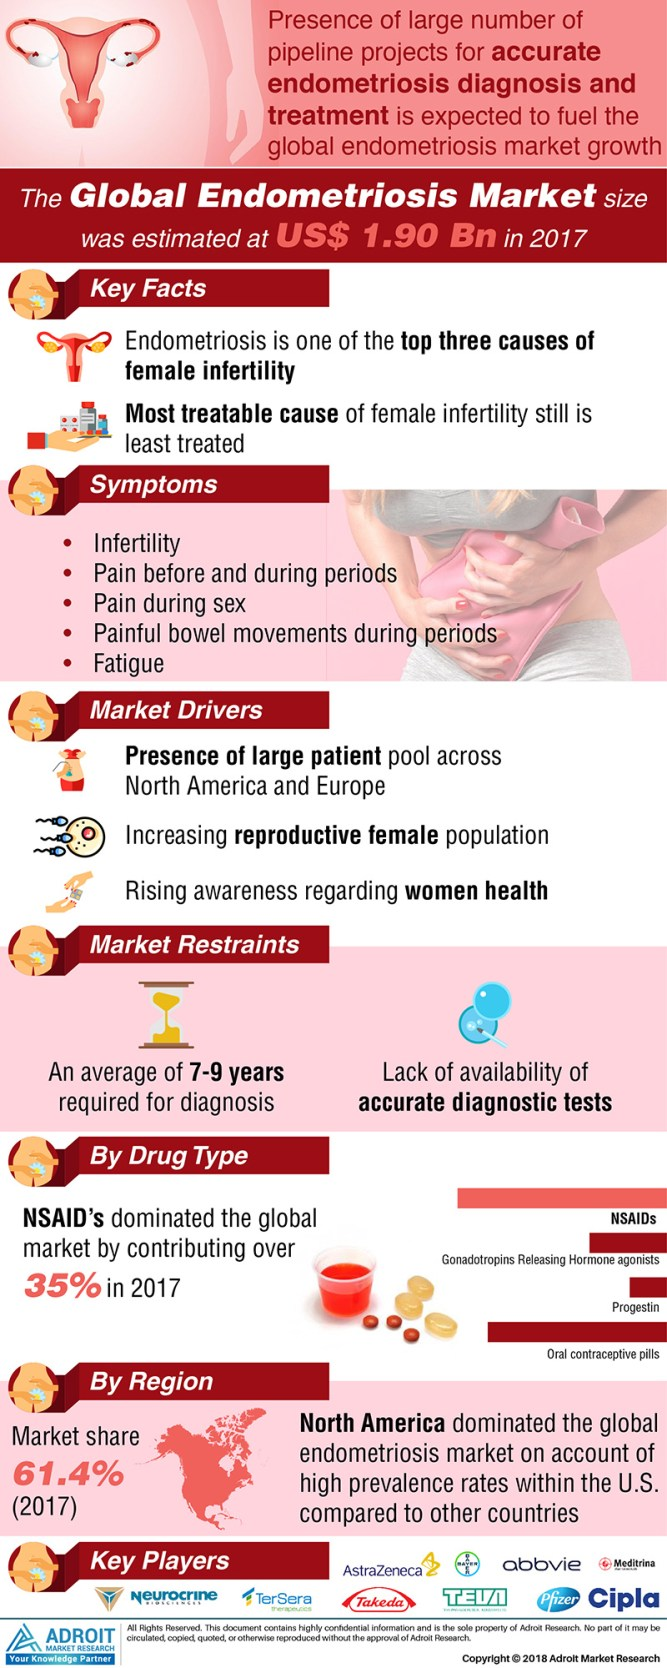 Endometriosis Market 2019 : Emerging Trends, Regional Demand, Menstrual Cycle, Risk Factors, Diagnosis & Prevention, Perceiving Growth, Business Strategies and Forecast till 2025 1